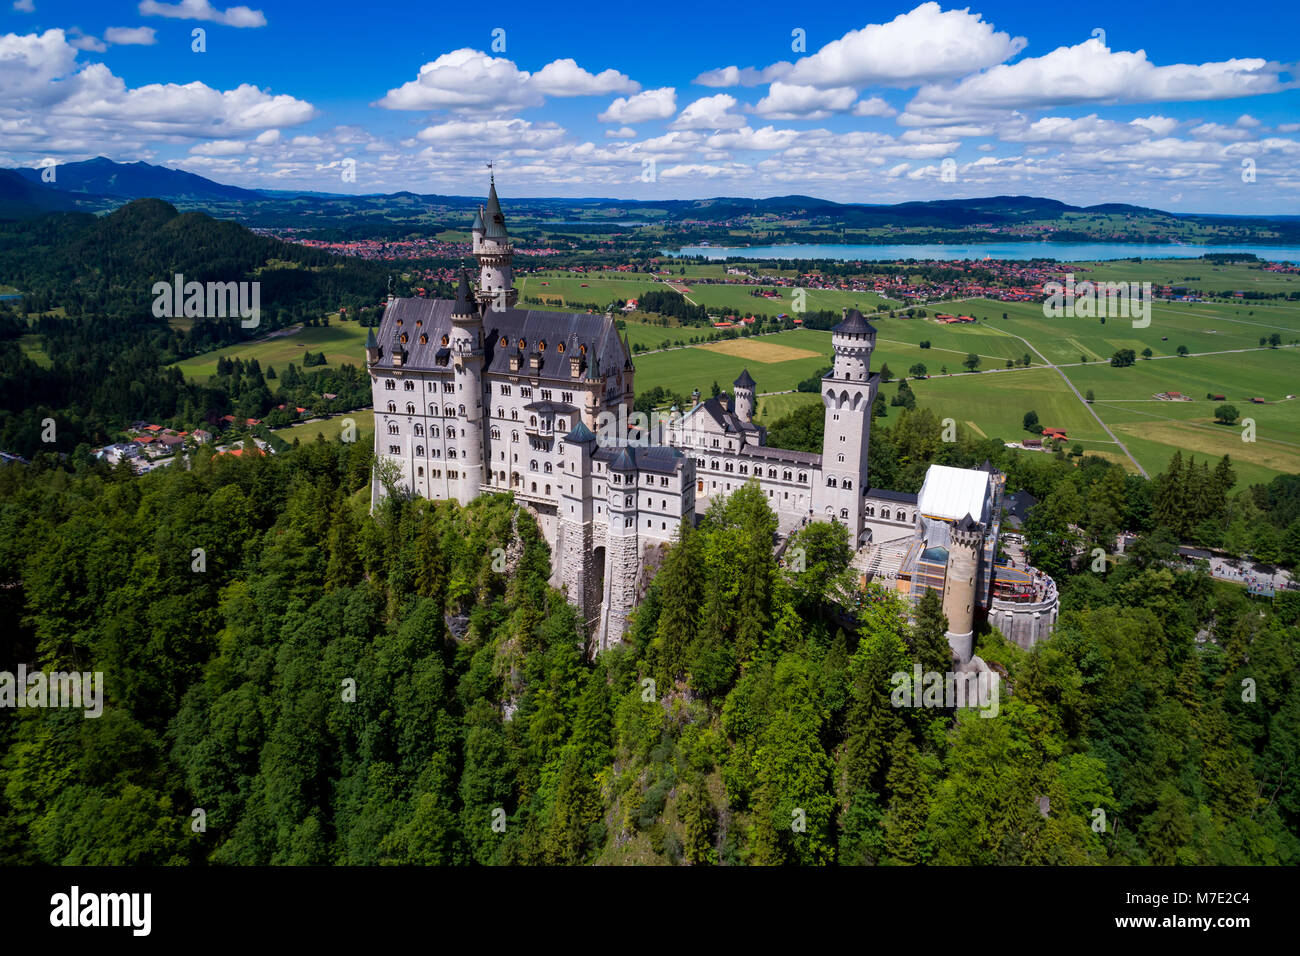 Neuschwanstein Castle Bavarian Alps Germany - Stock Image